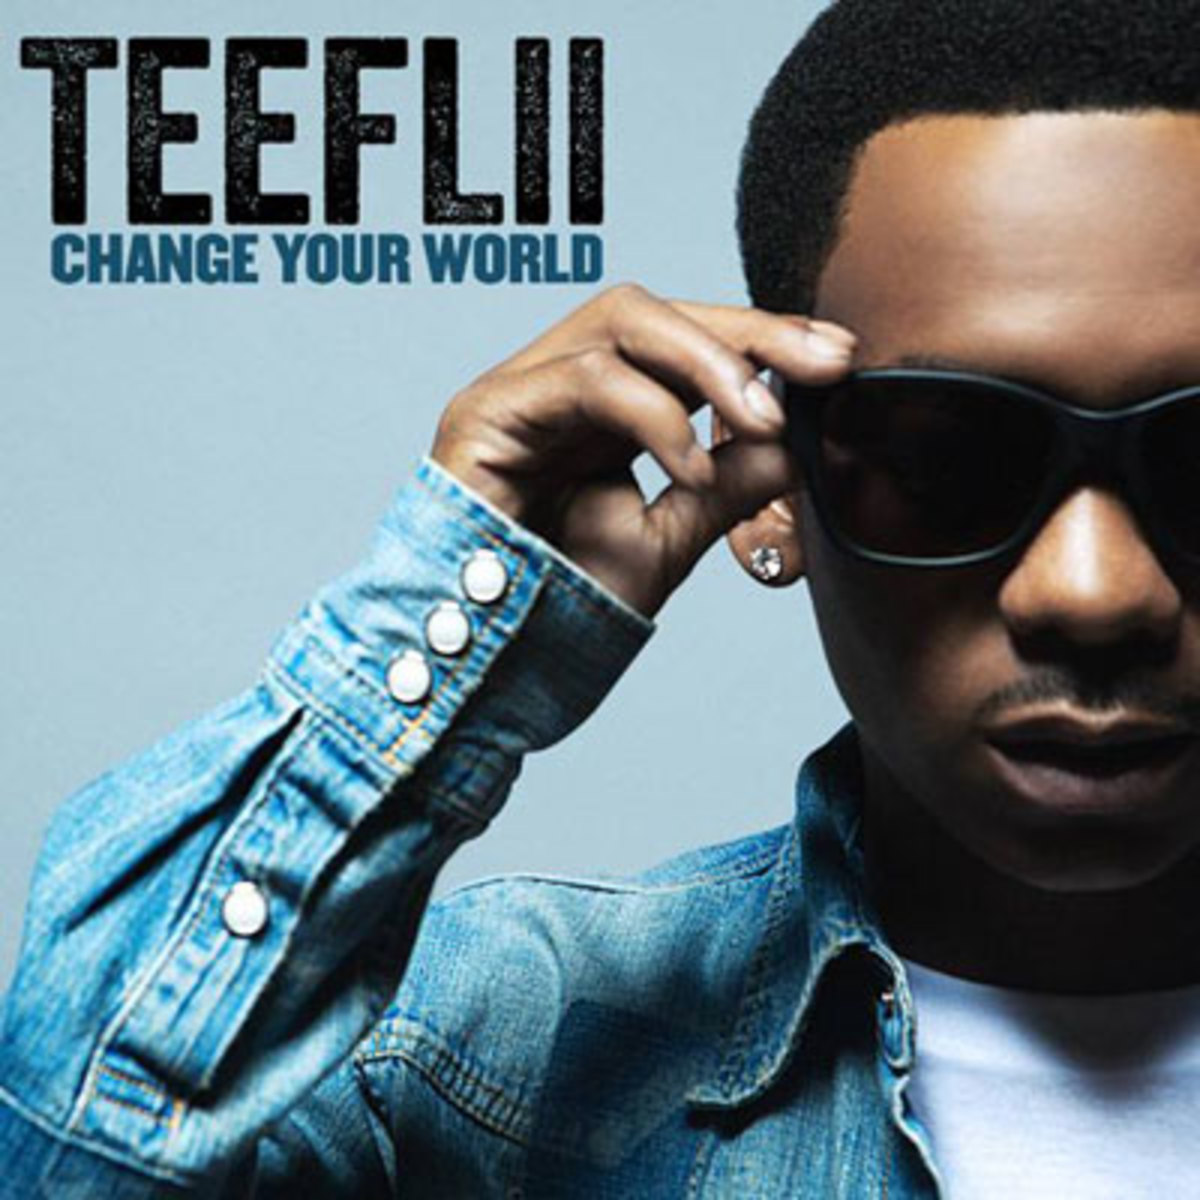 teeflii-changeyourworld.jpg